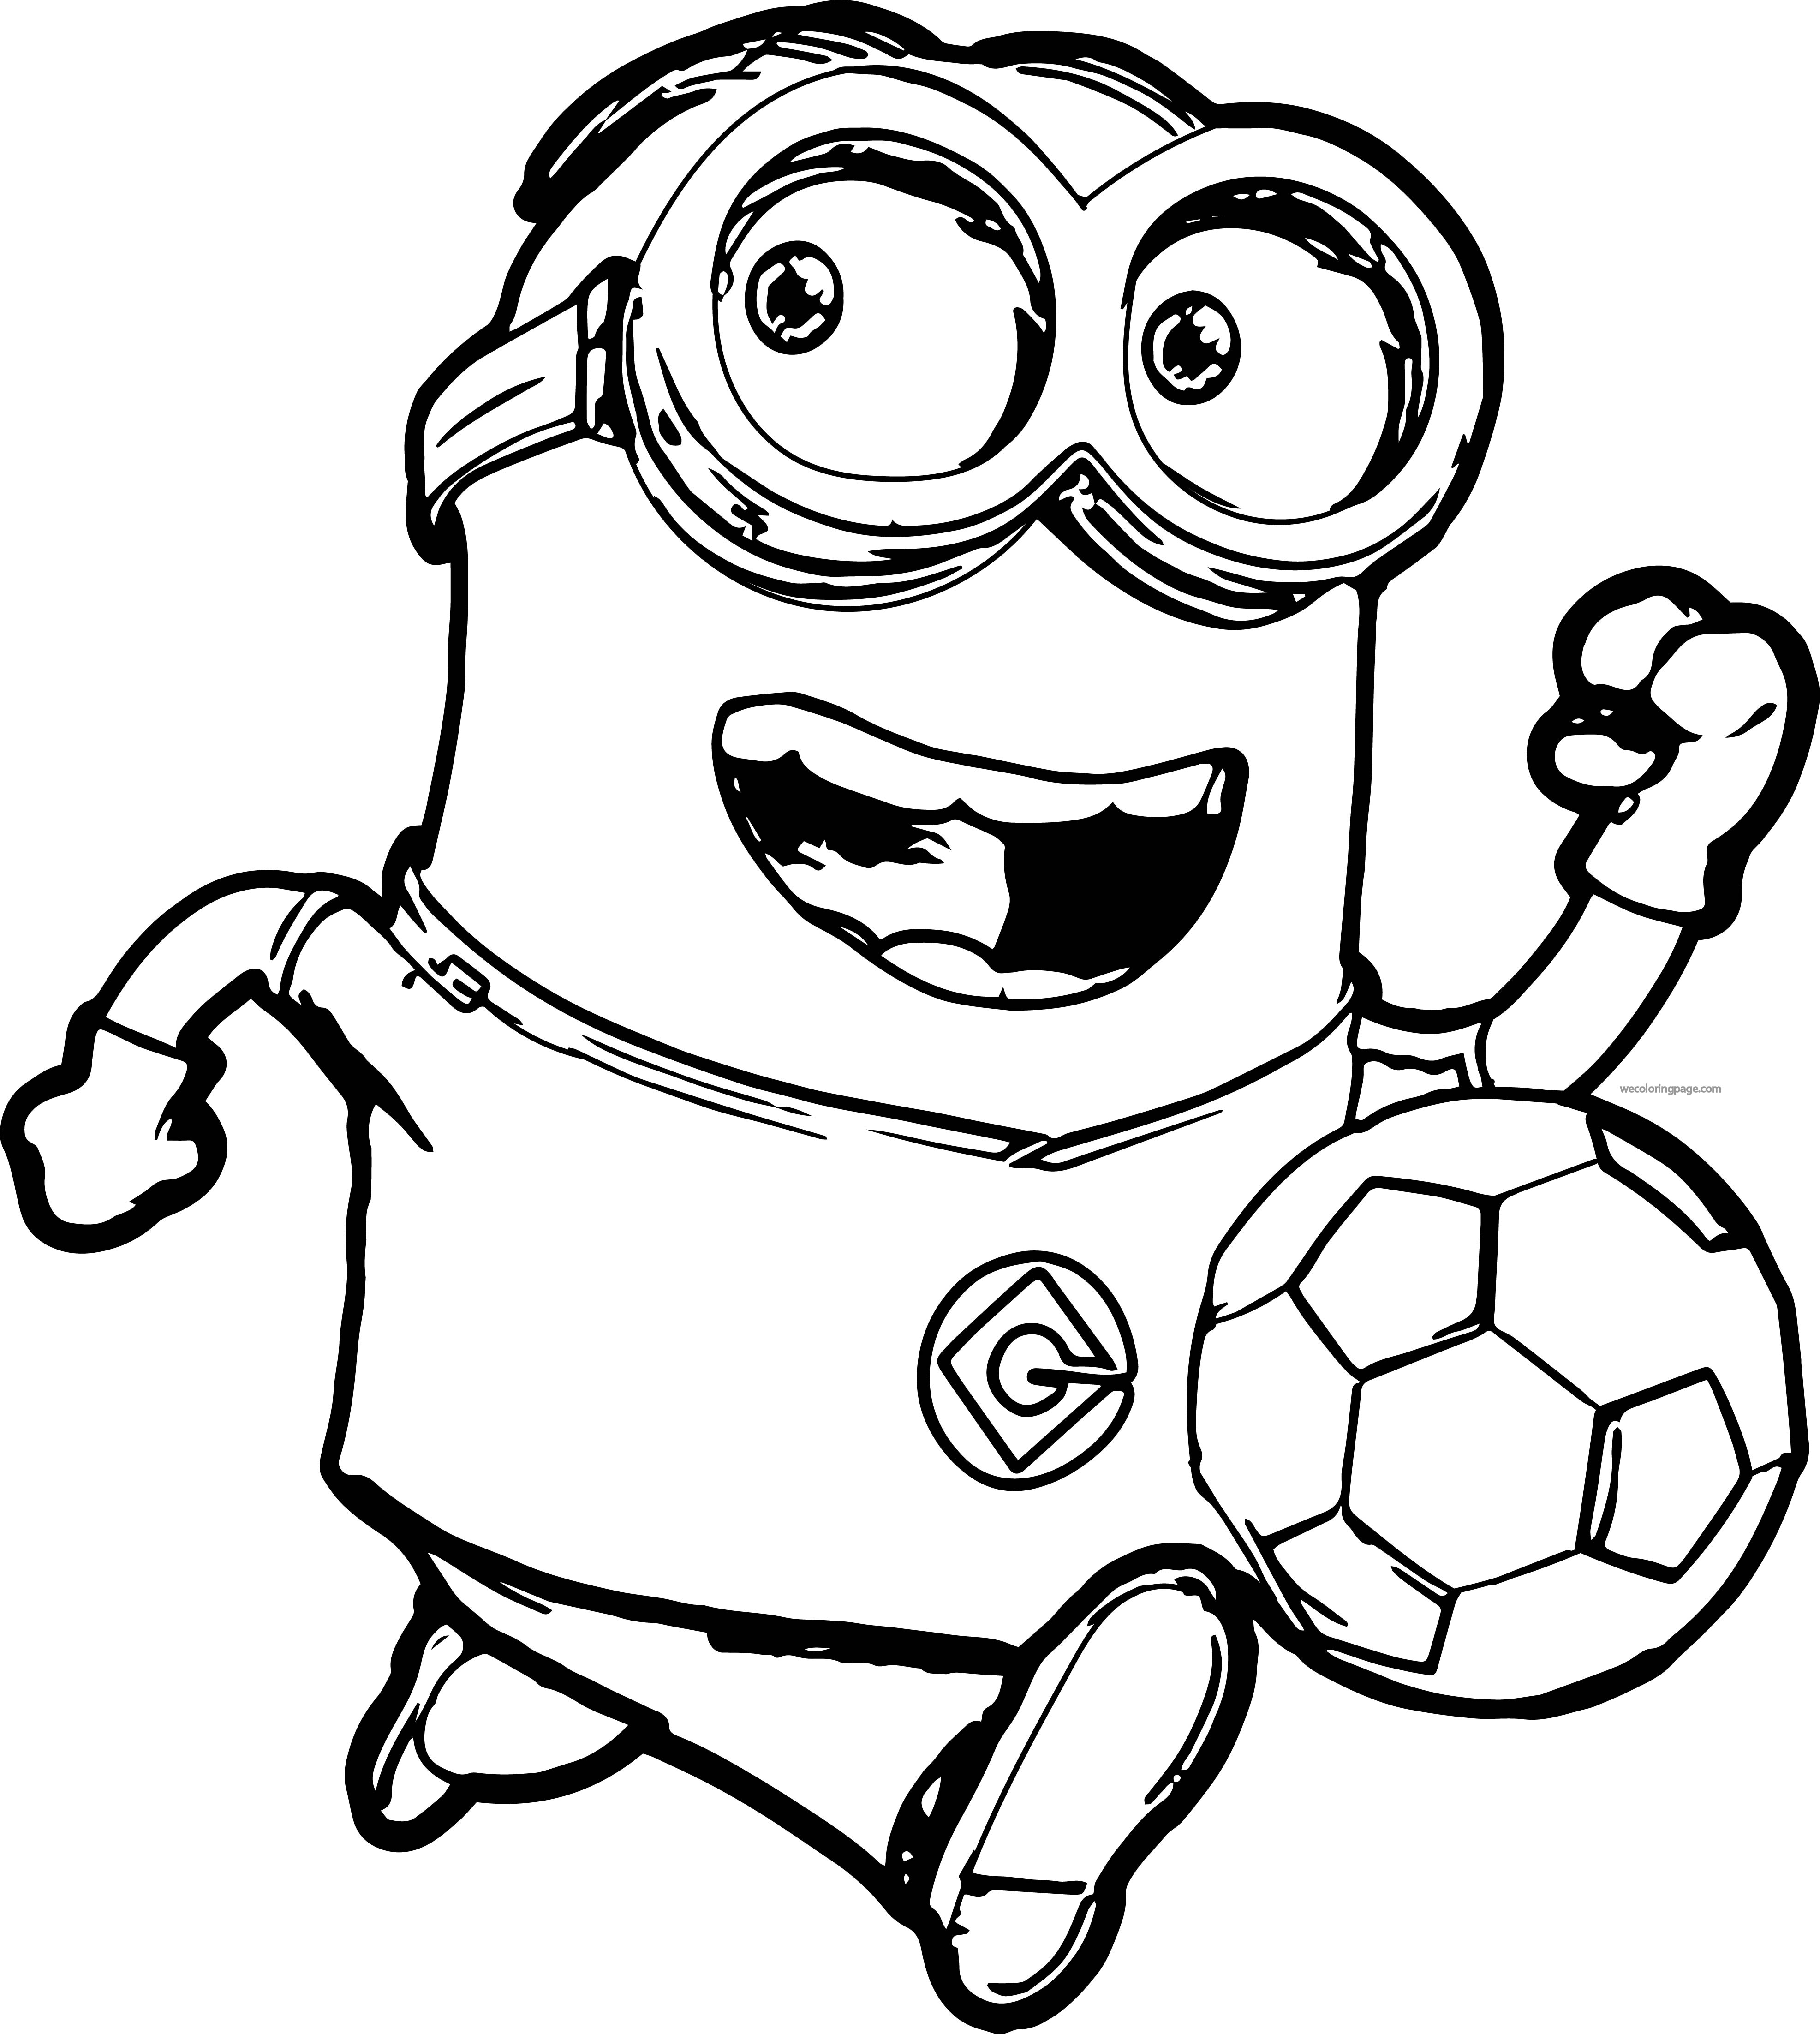 coloring images to print free printable goofy coloring pages for kids images print coloring to